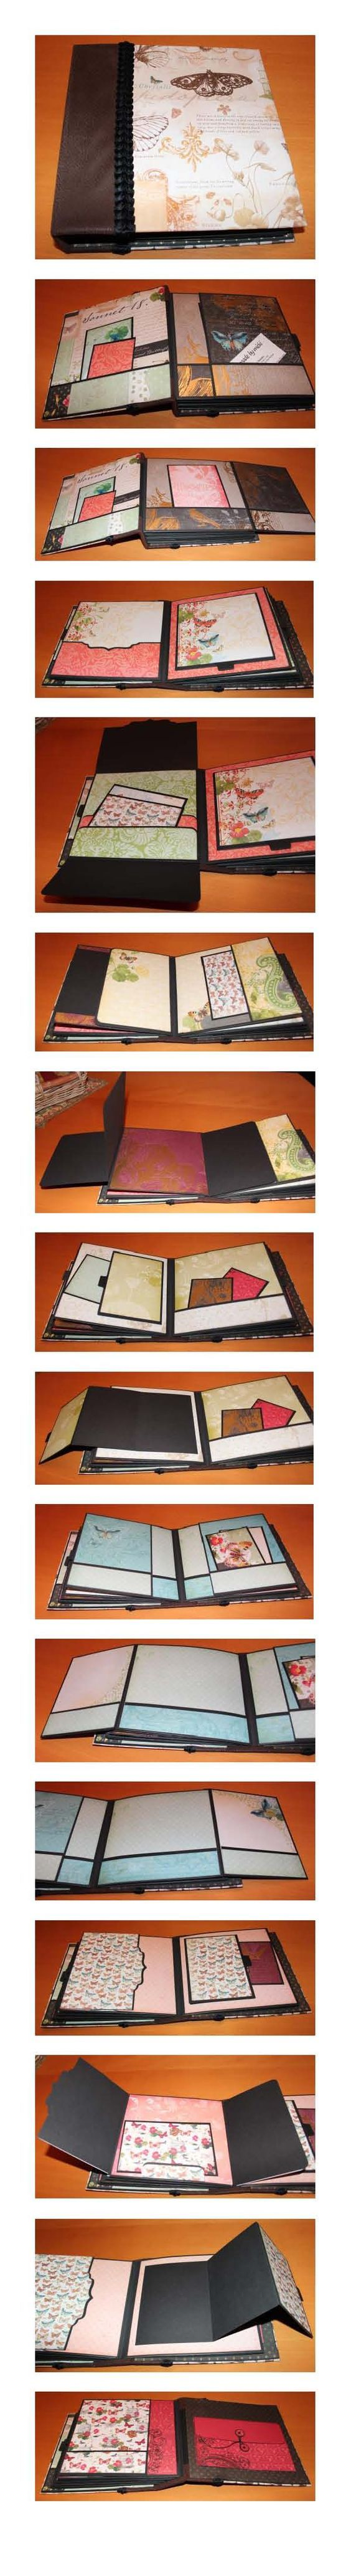 8x8 mini album - using DCWV Mariposa stack: